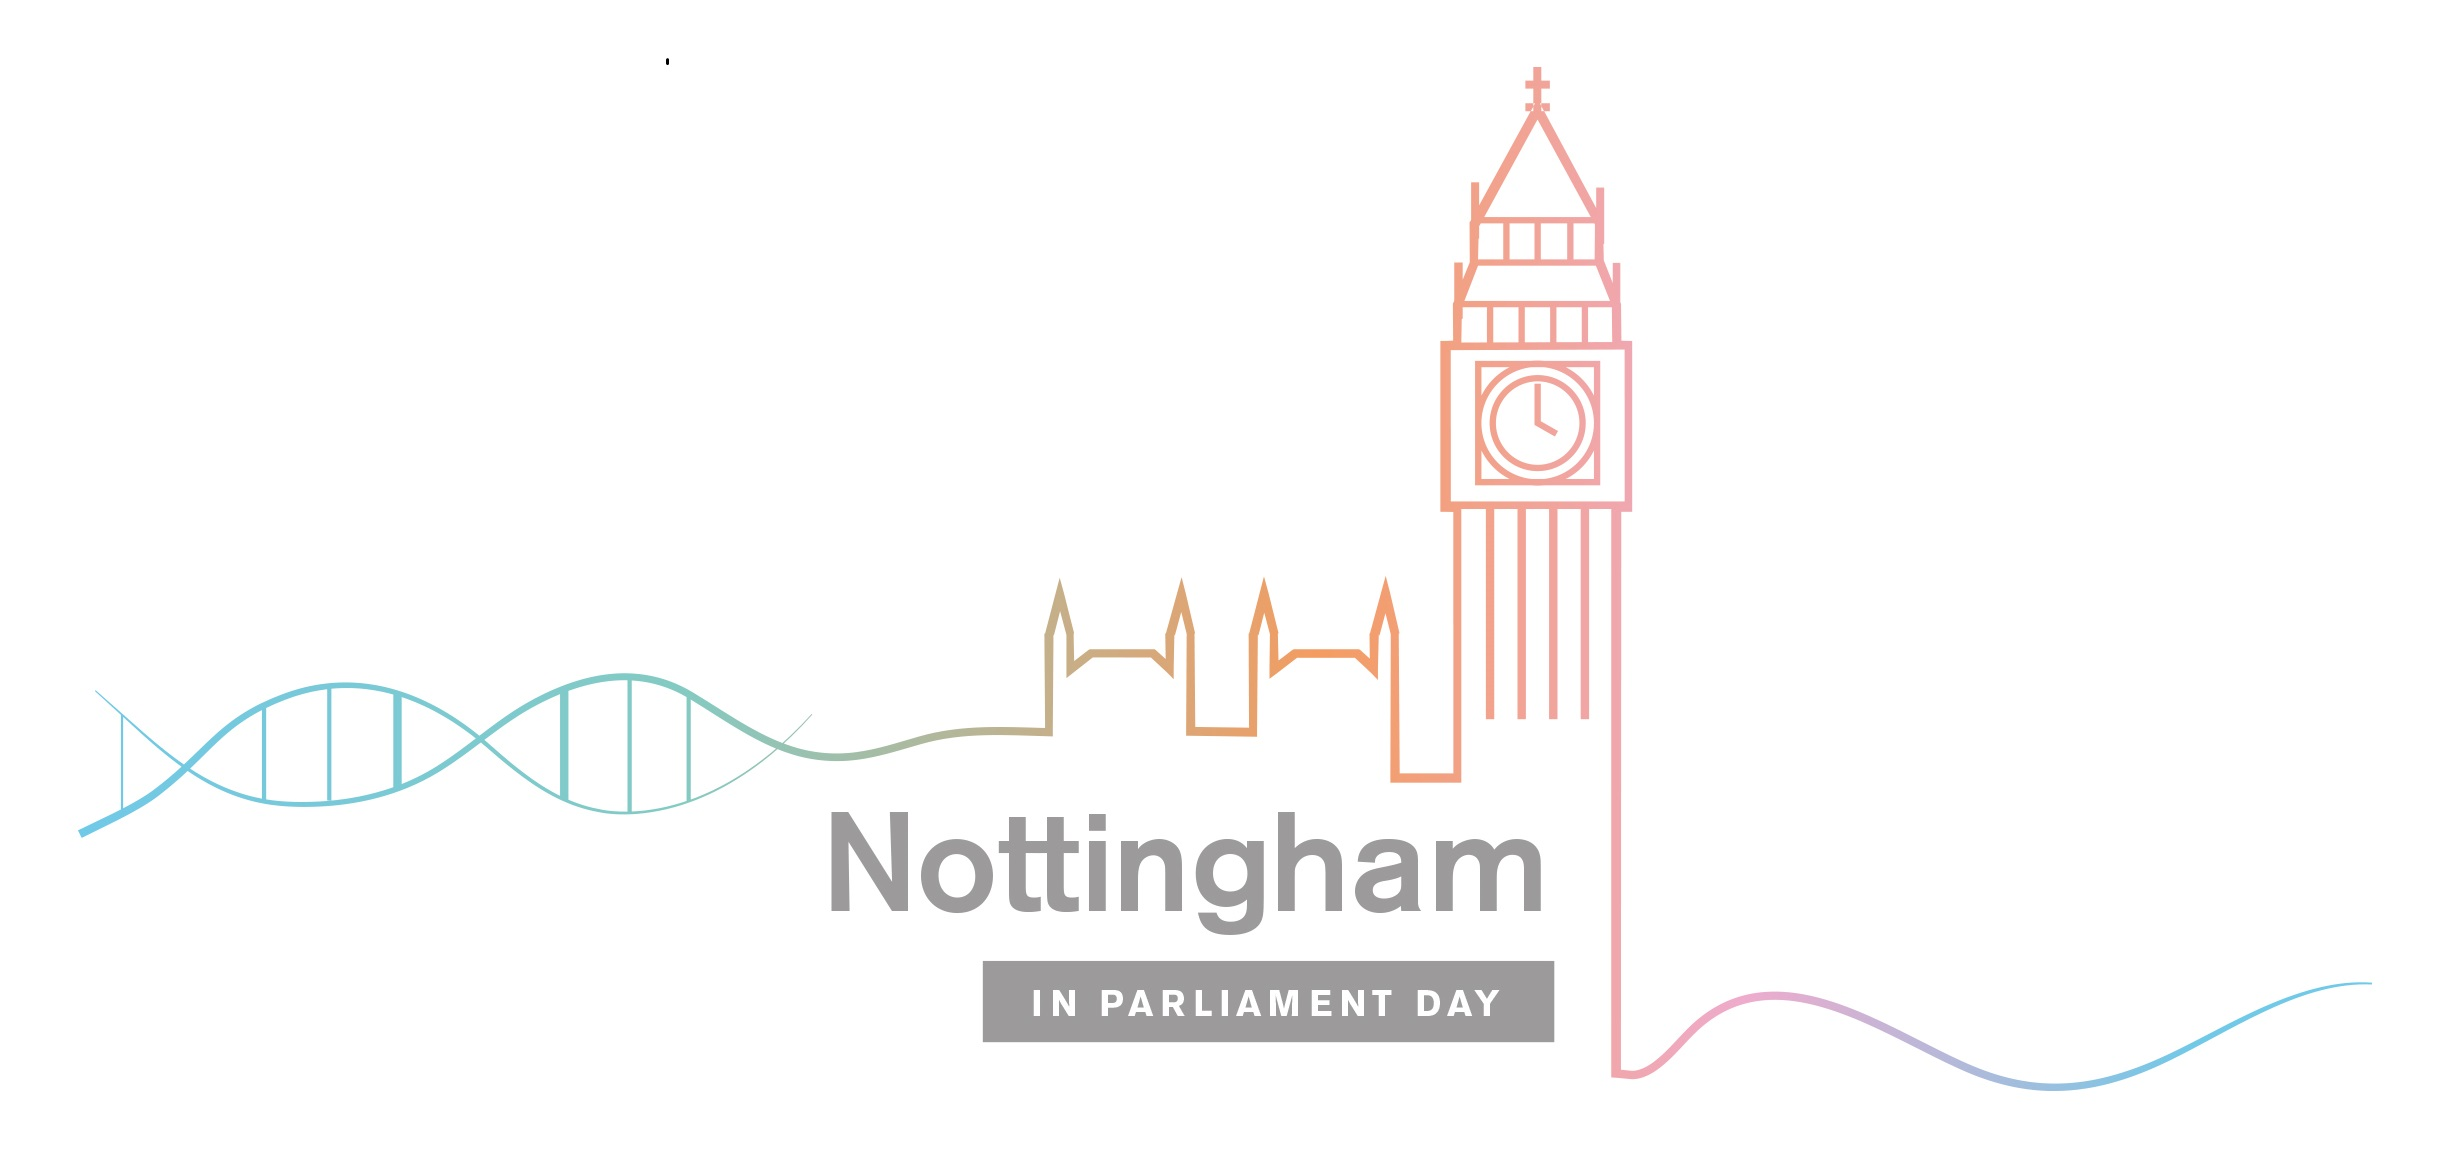 040316_Nottingham_In_Parliament